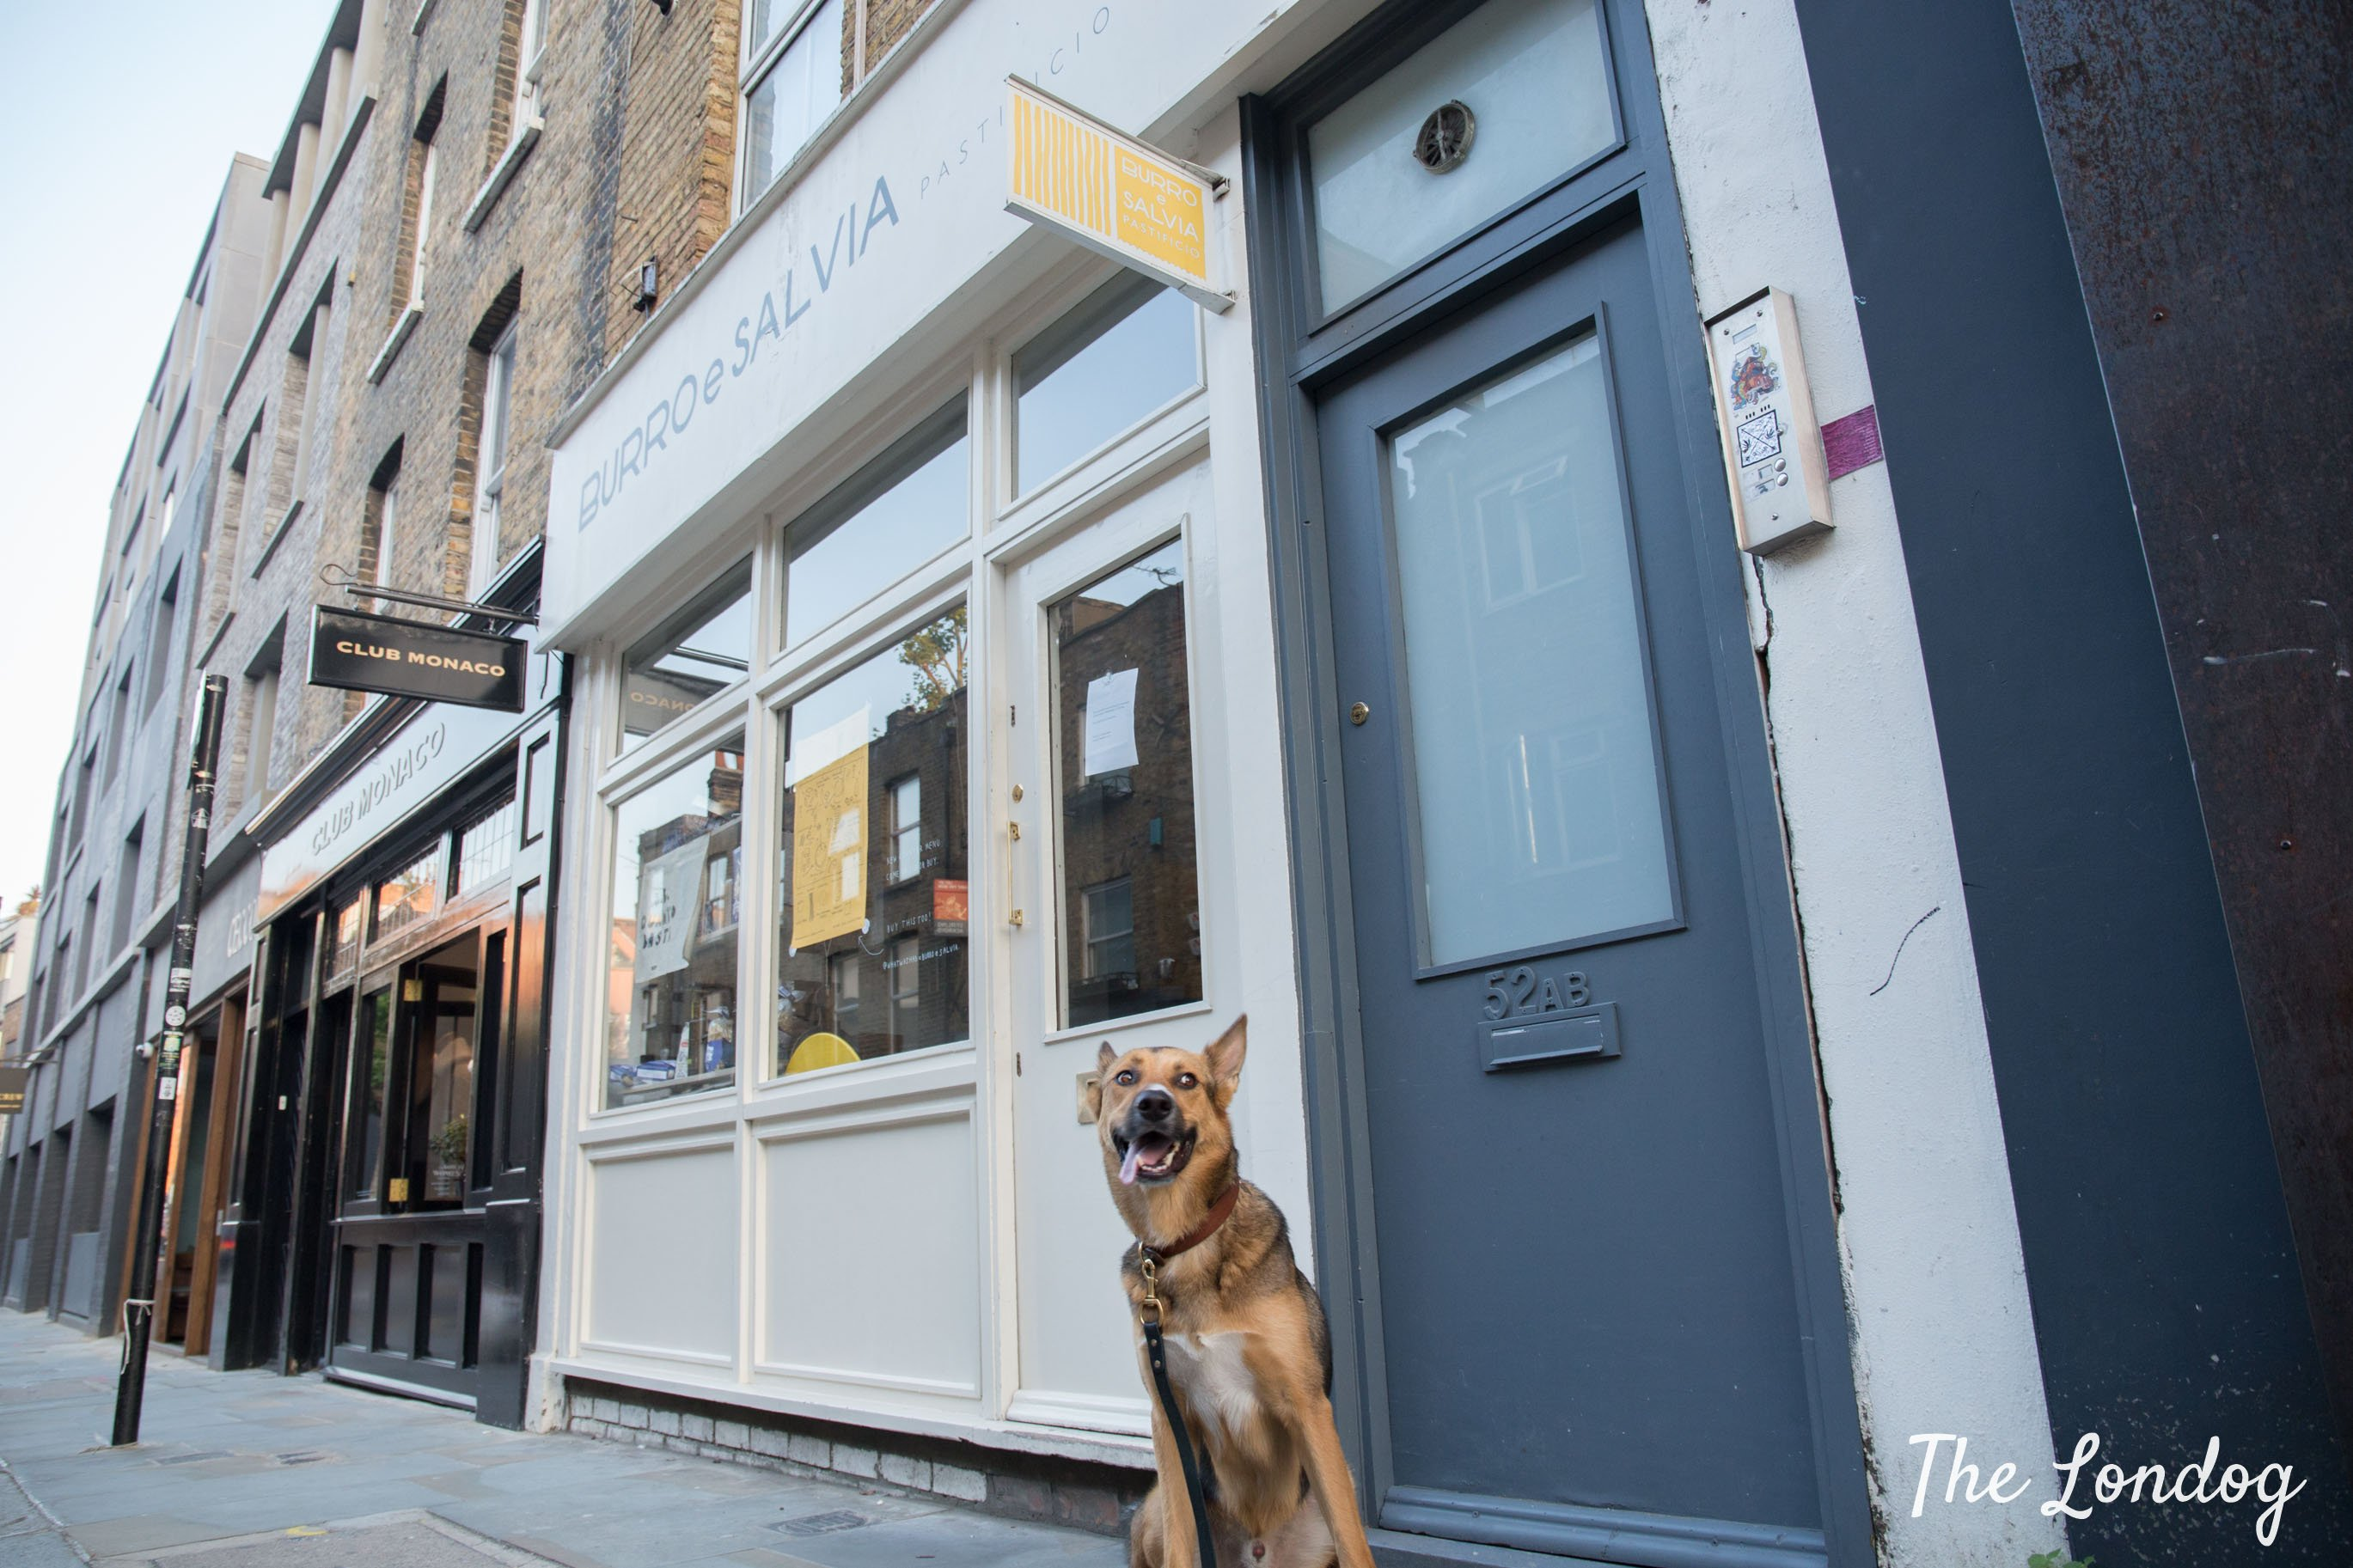 Large dog outside dog-friendly Italian restaurant in London Shoreditch